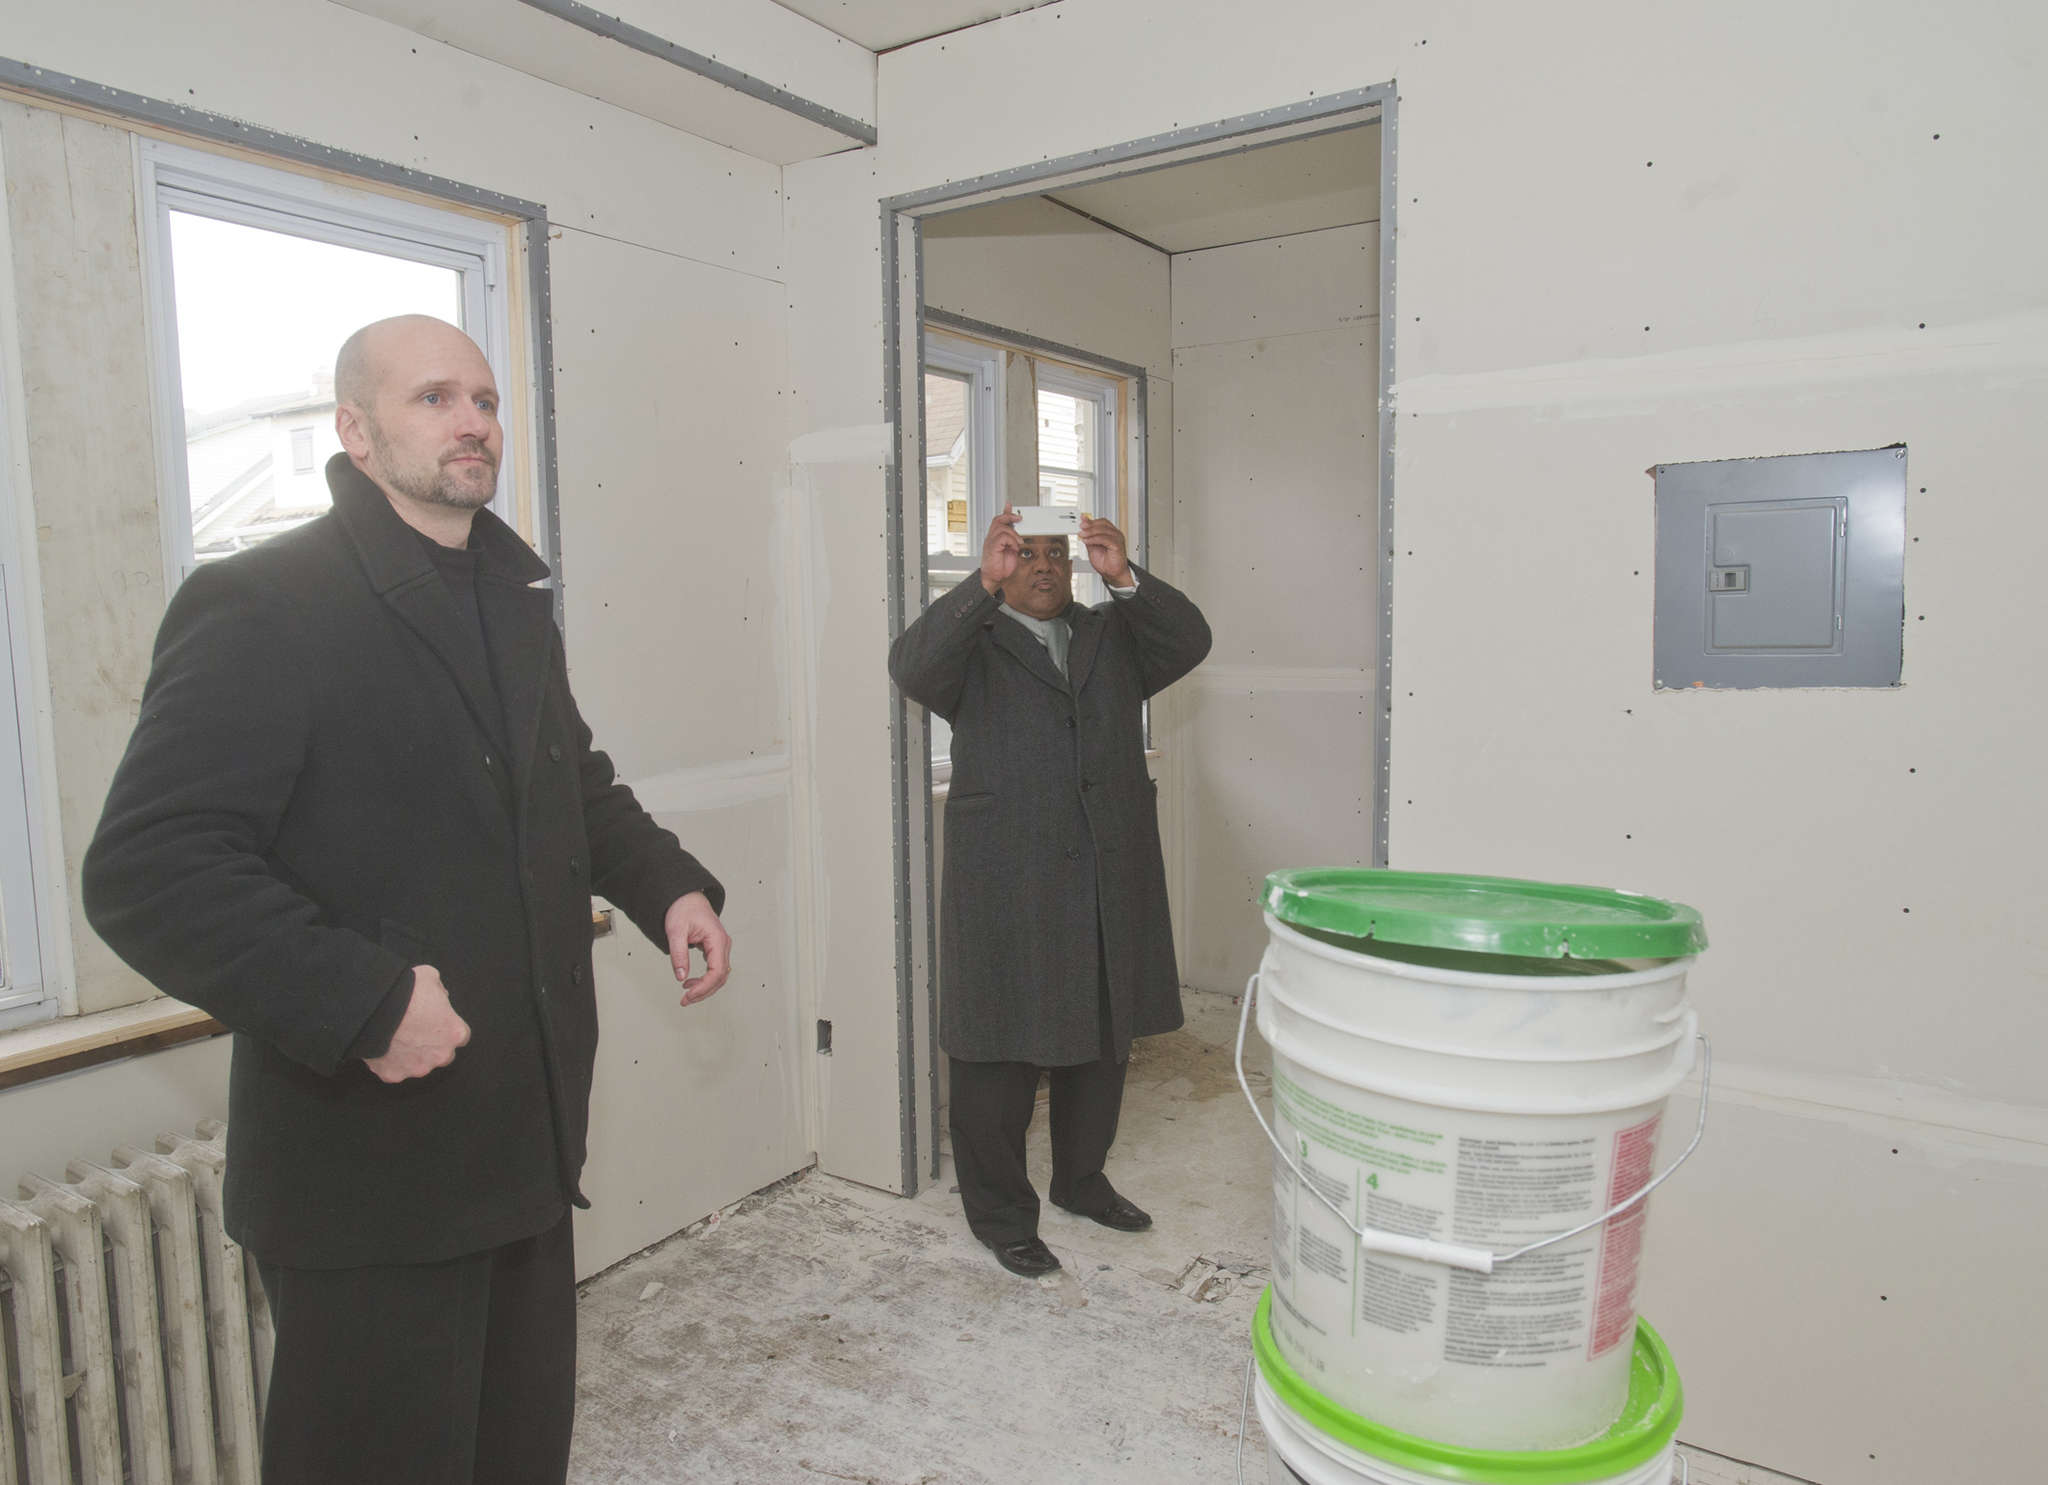 Oaklyn Mayor Bob Forbes (left) and Gino Lewis, director of housing for the Camden County Improvement Authority, look at an apartment being rehabilitated.